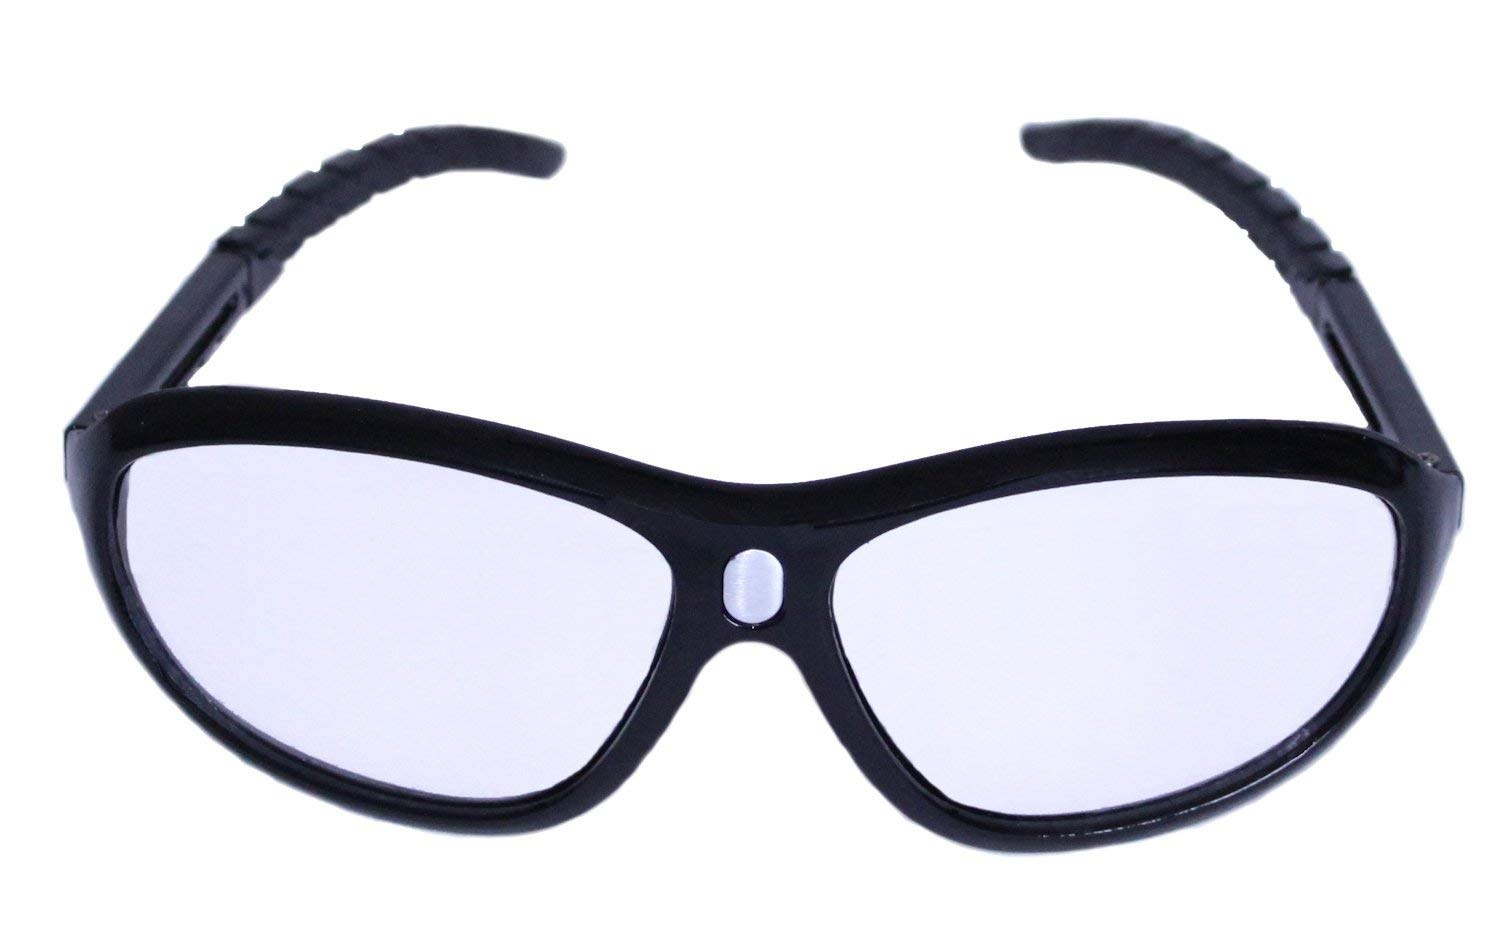 Dunlop Squash Protection Goggles I-Armor